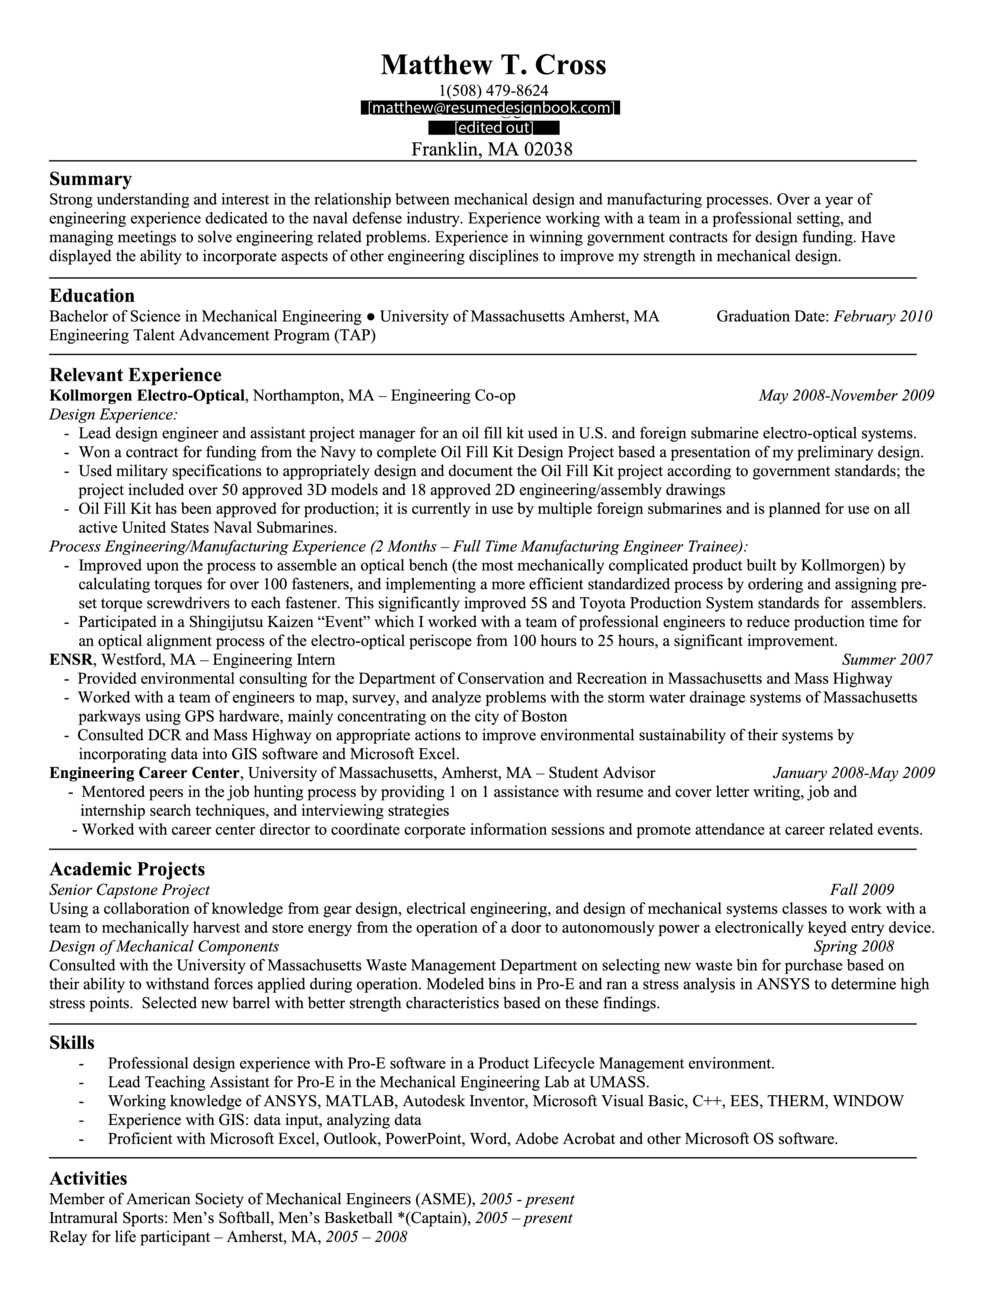 Format Examples The Resume Design Book